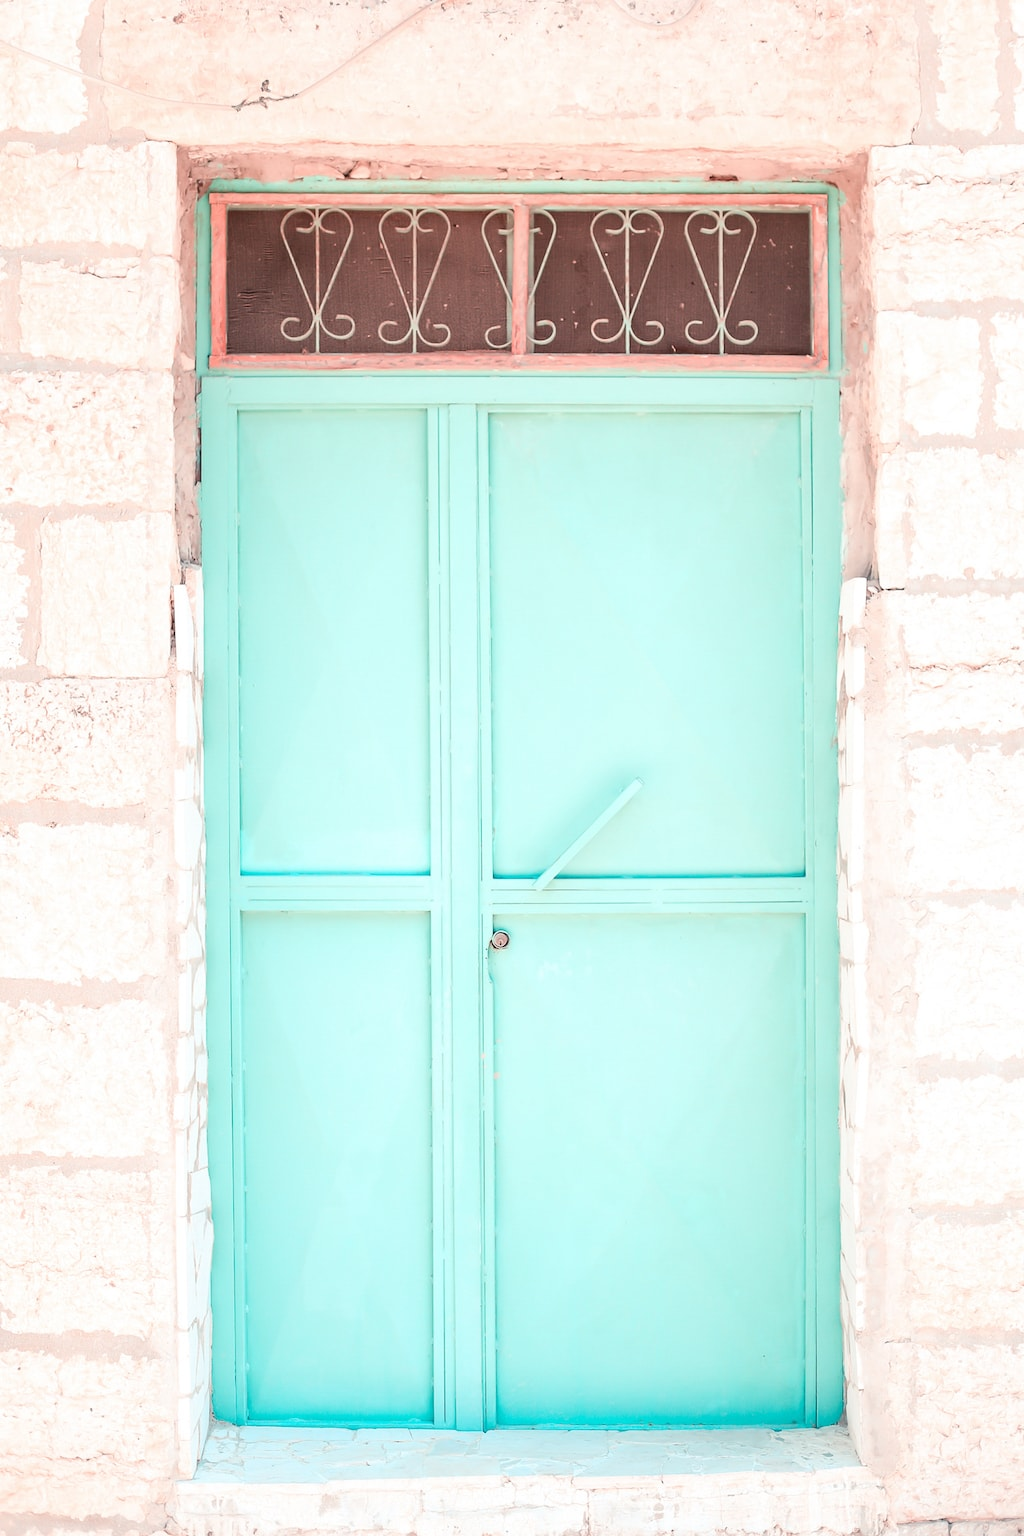 A mint/teal door.